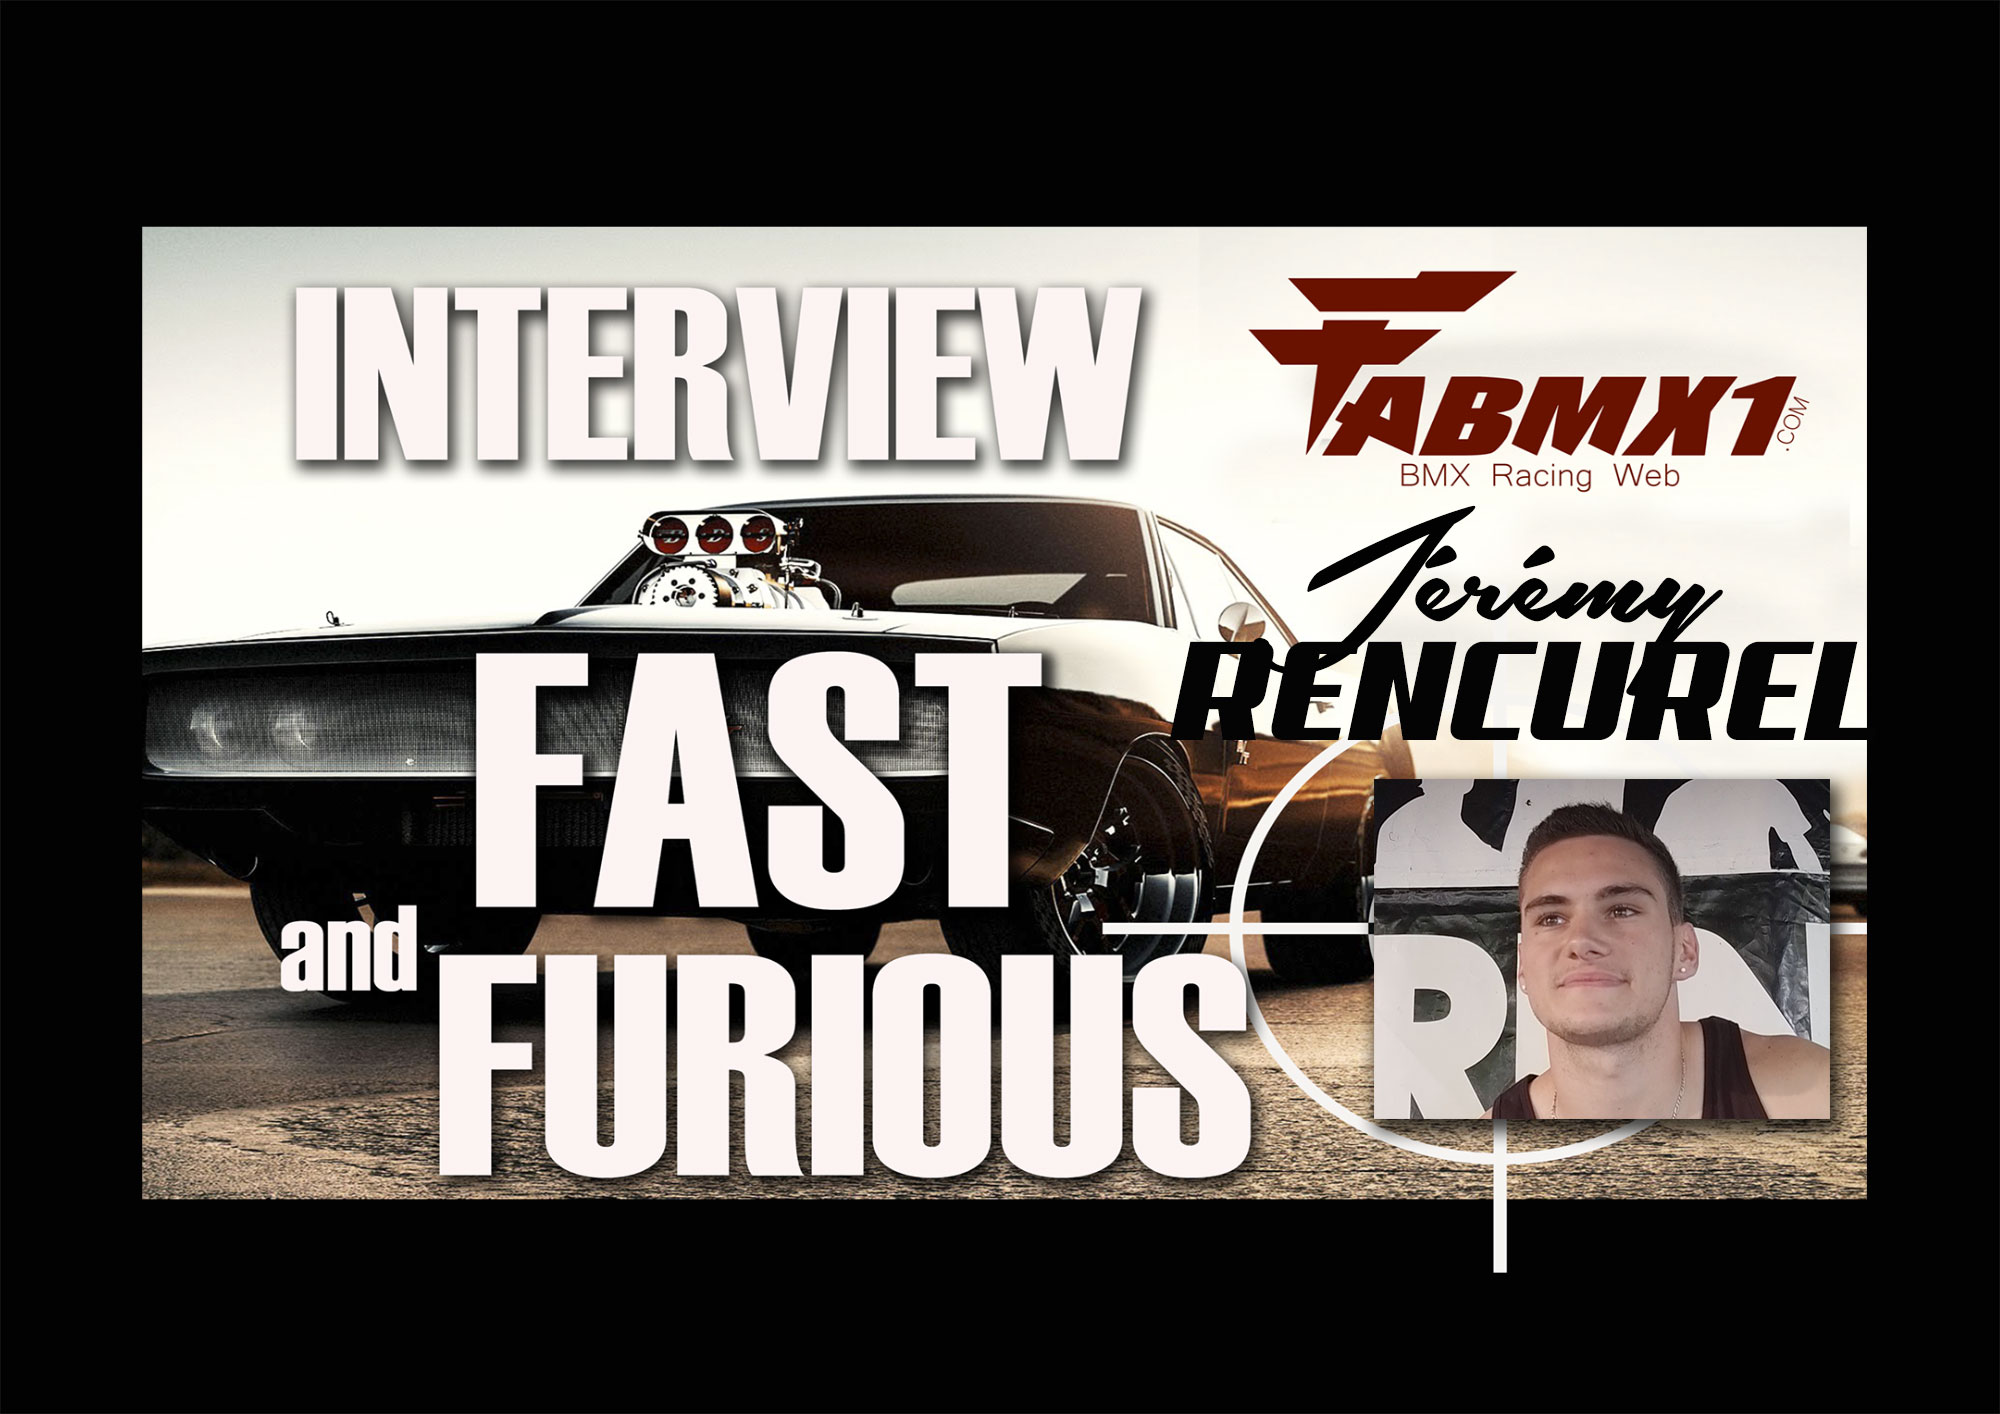 ITW FAST & FURIOUS/ Jeremy RENCUREL